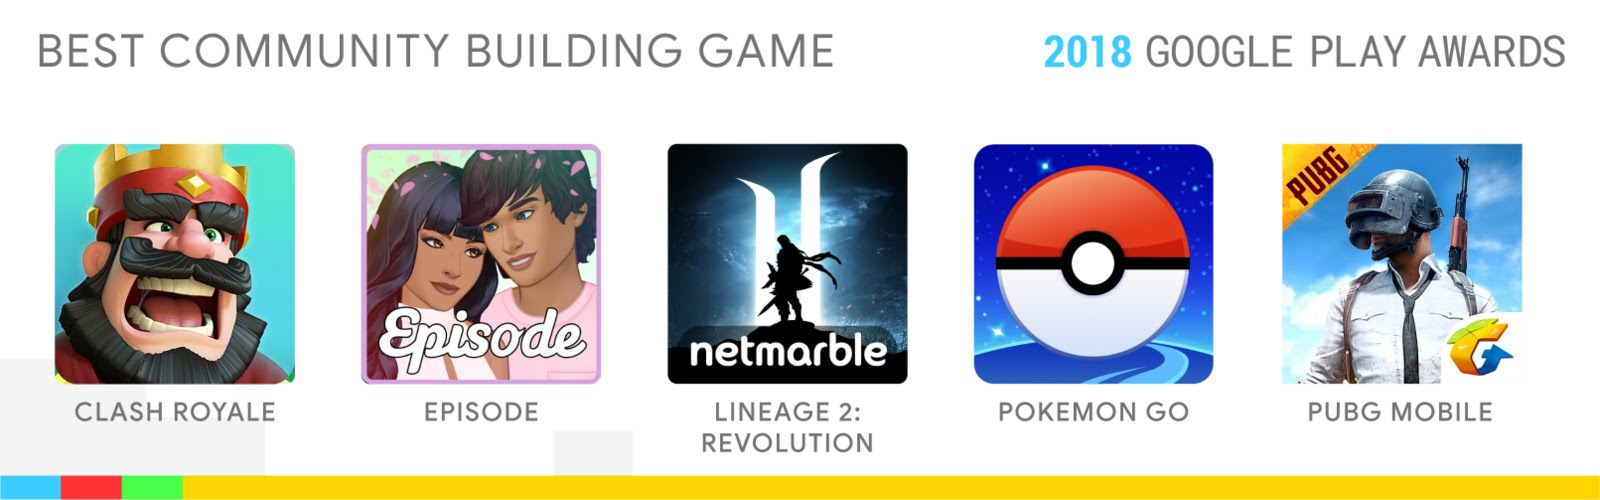 Best Community Building Game: Clash Royale, Lineage 2: Revolution, Pokémon GO, PUBG MOBILE